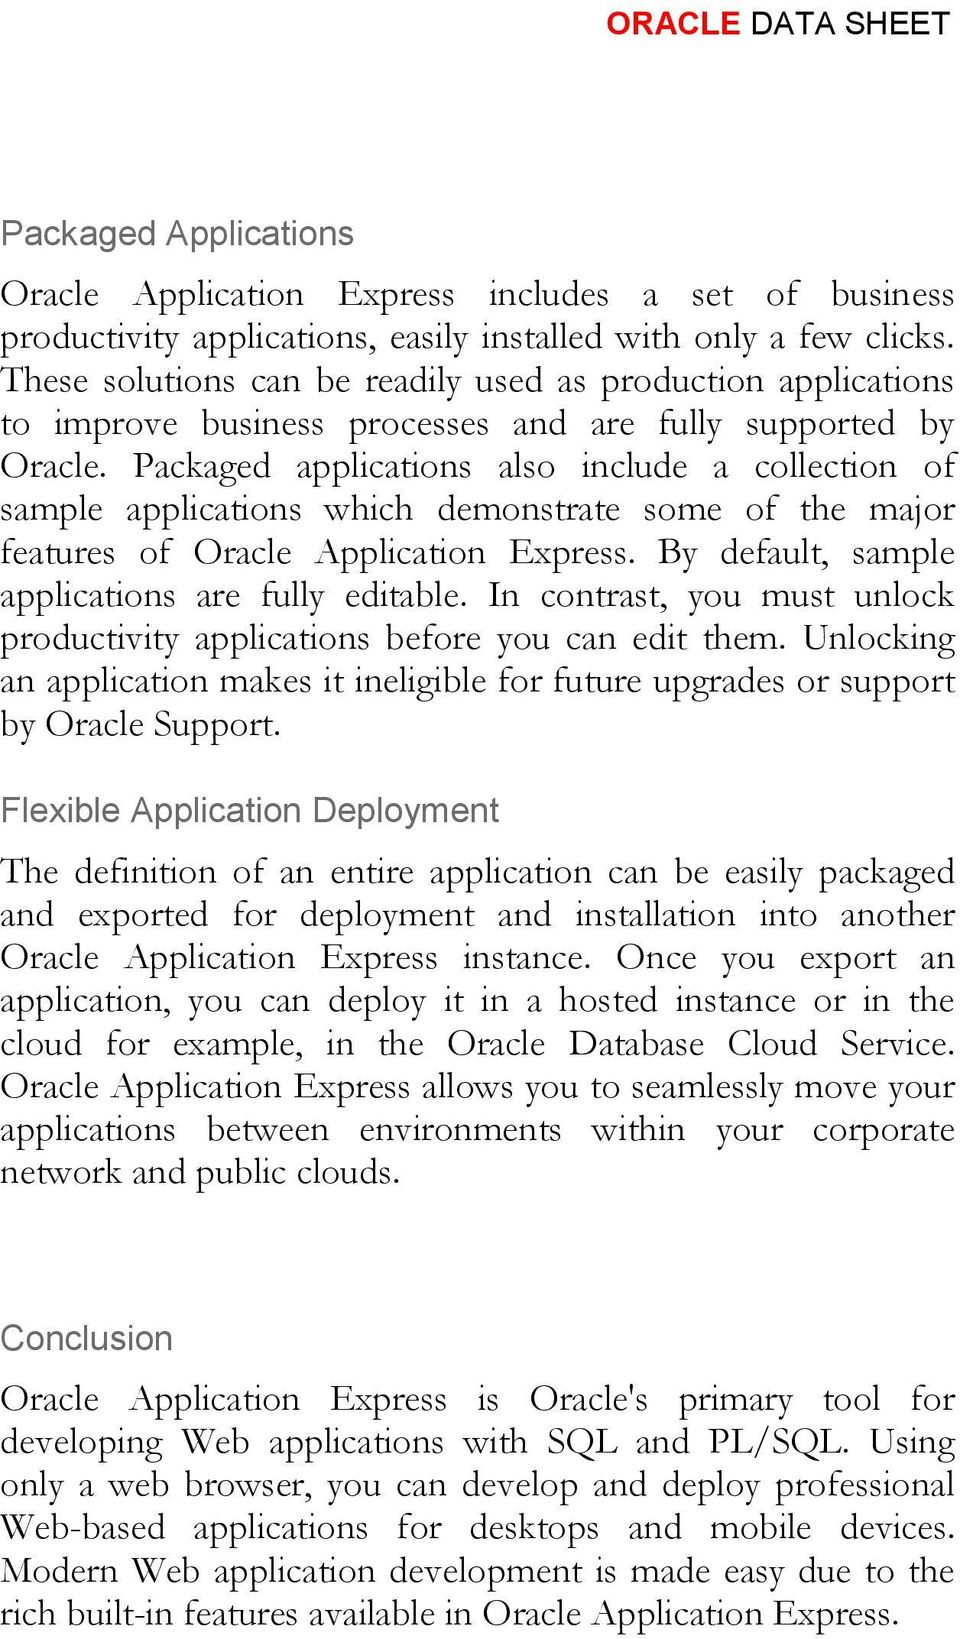 Packaged applications also include a collection of sample applications which demonstrate some of the major features of Oracle Application Express. By default, sample applications are fully editable.